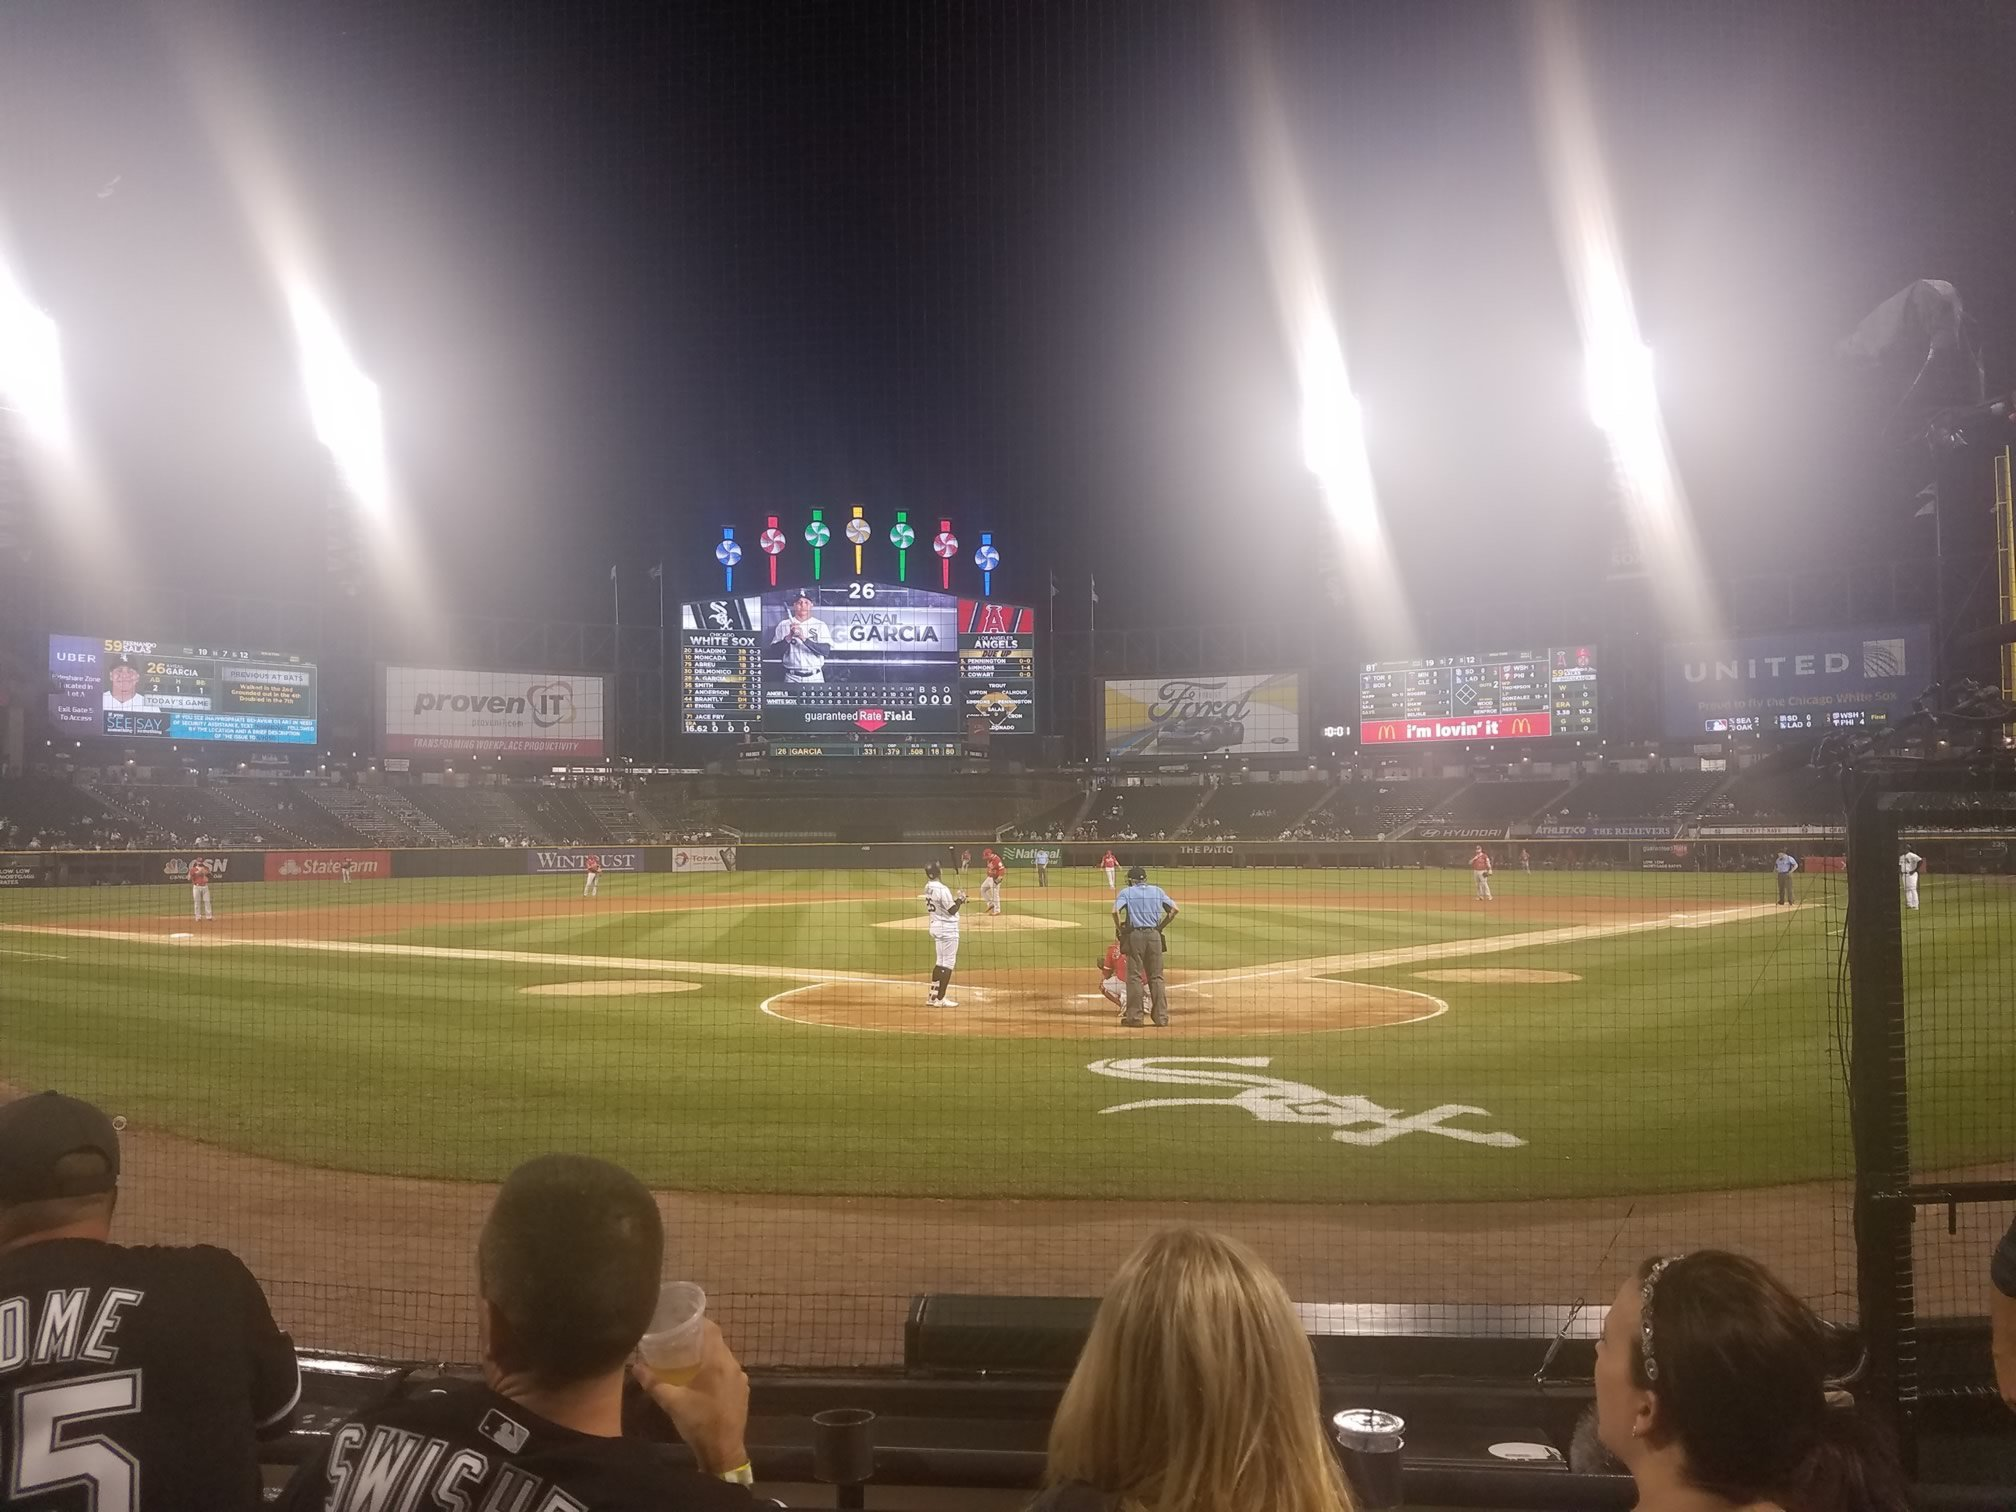 Seat View for Guaranteed Rate Field Scout Seats 133